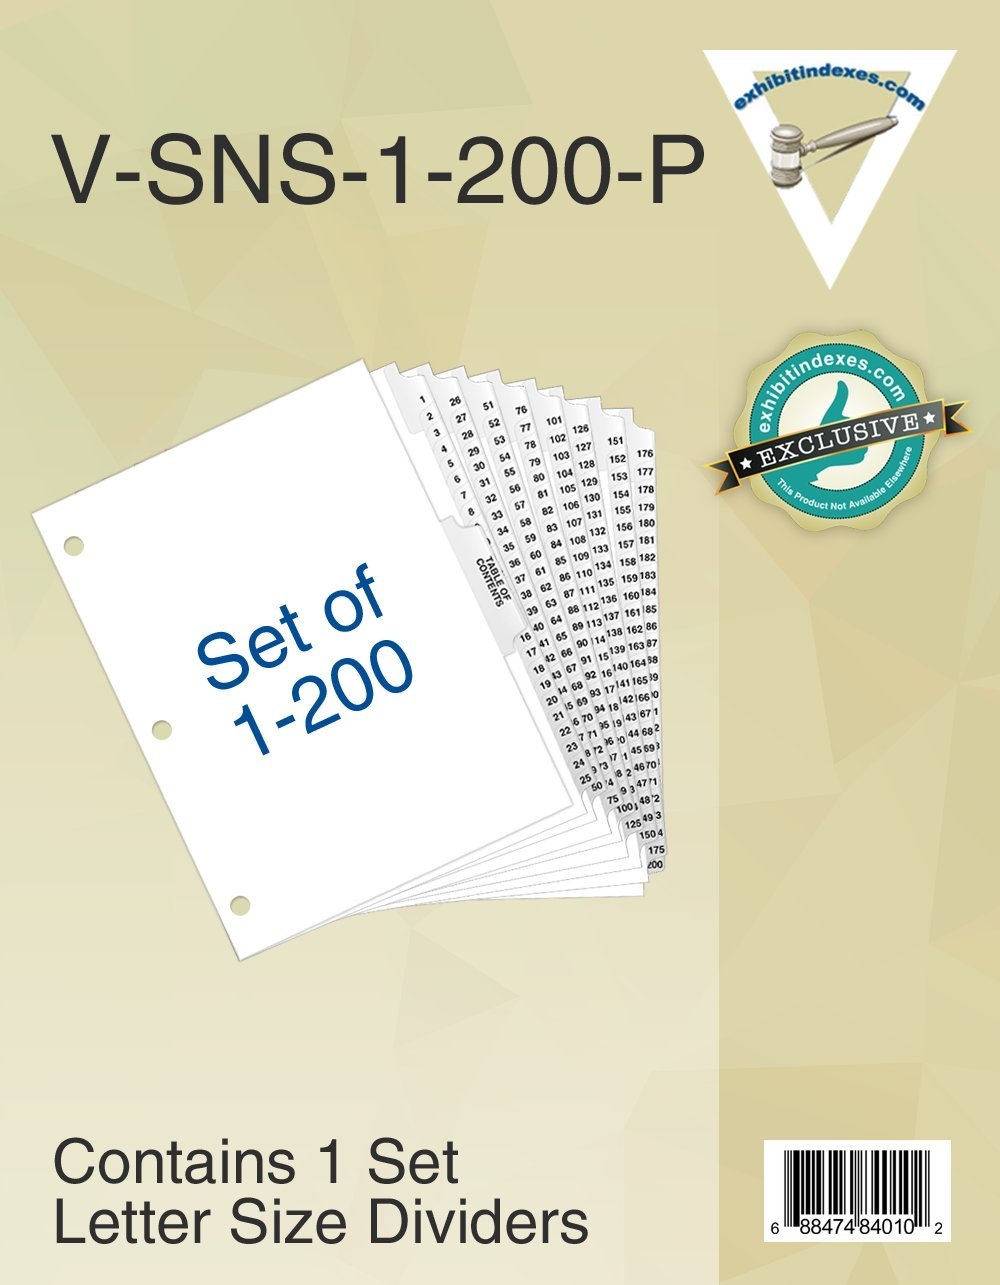 1-200 Binder Dividers 3 Hole Punched